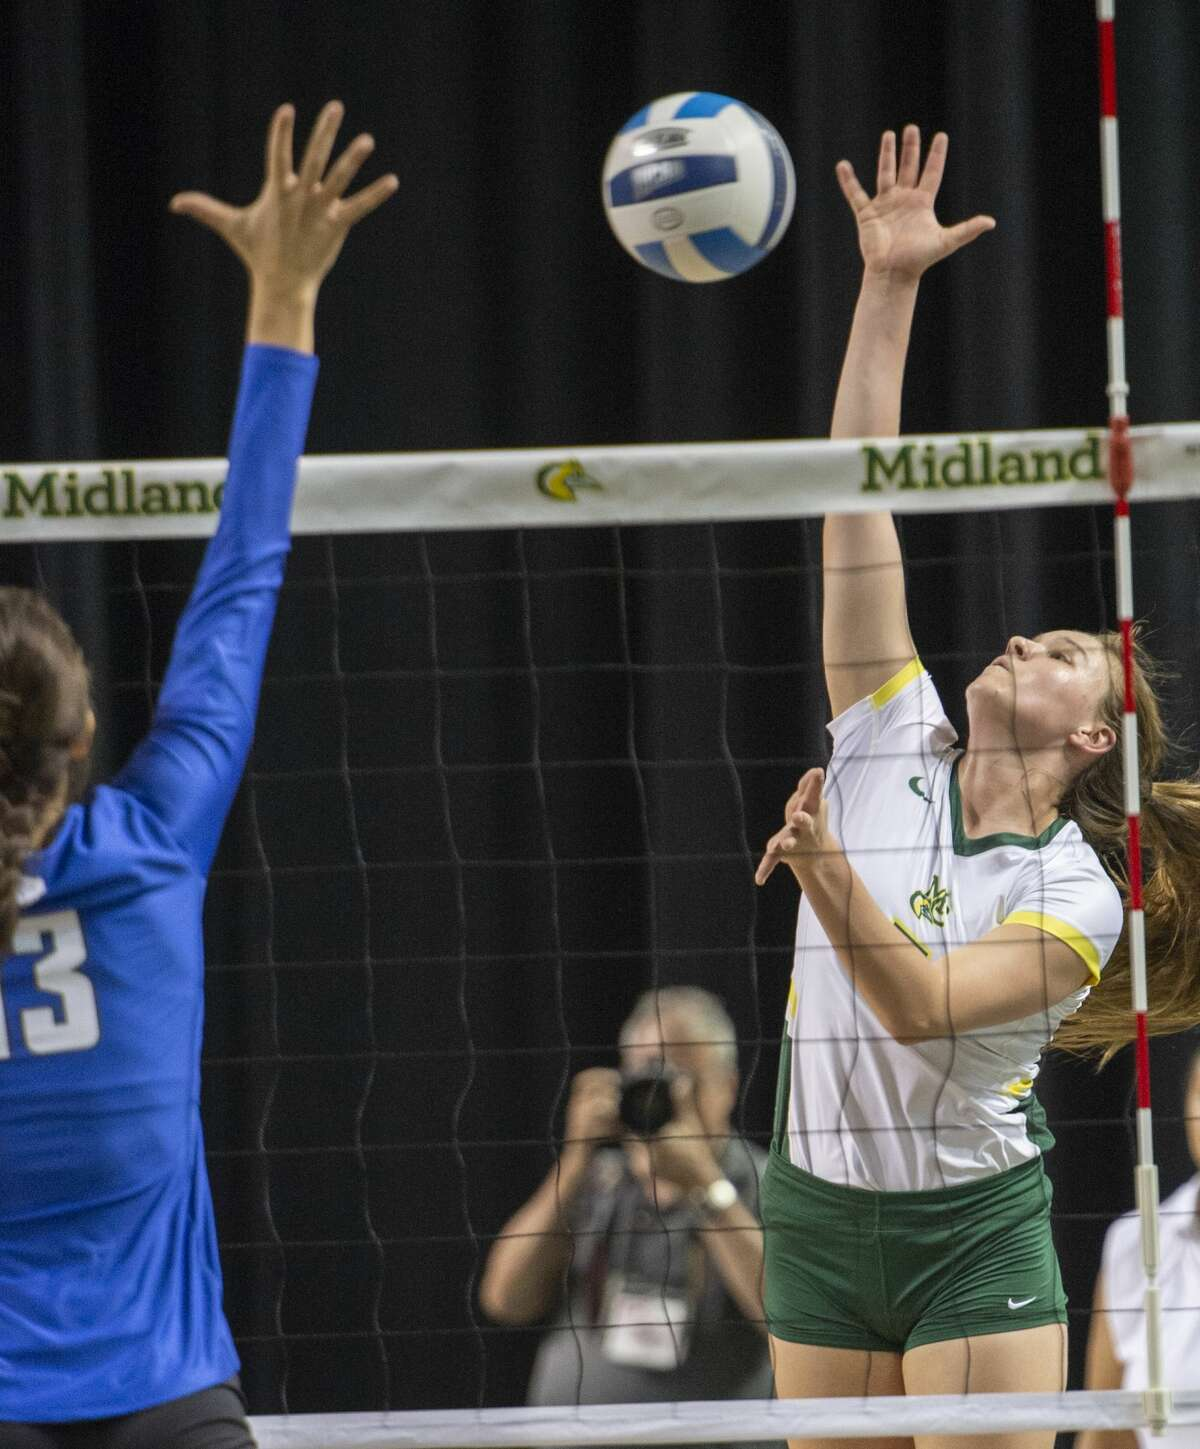 Midland College's Chesney Friesenhahn goes up for a hit as Odessa College's Maria Rodrigues tries to block 10/05/19 at the Midland College Chaparral Center. Tim Fischer/Reporter-Telegram